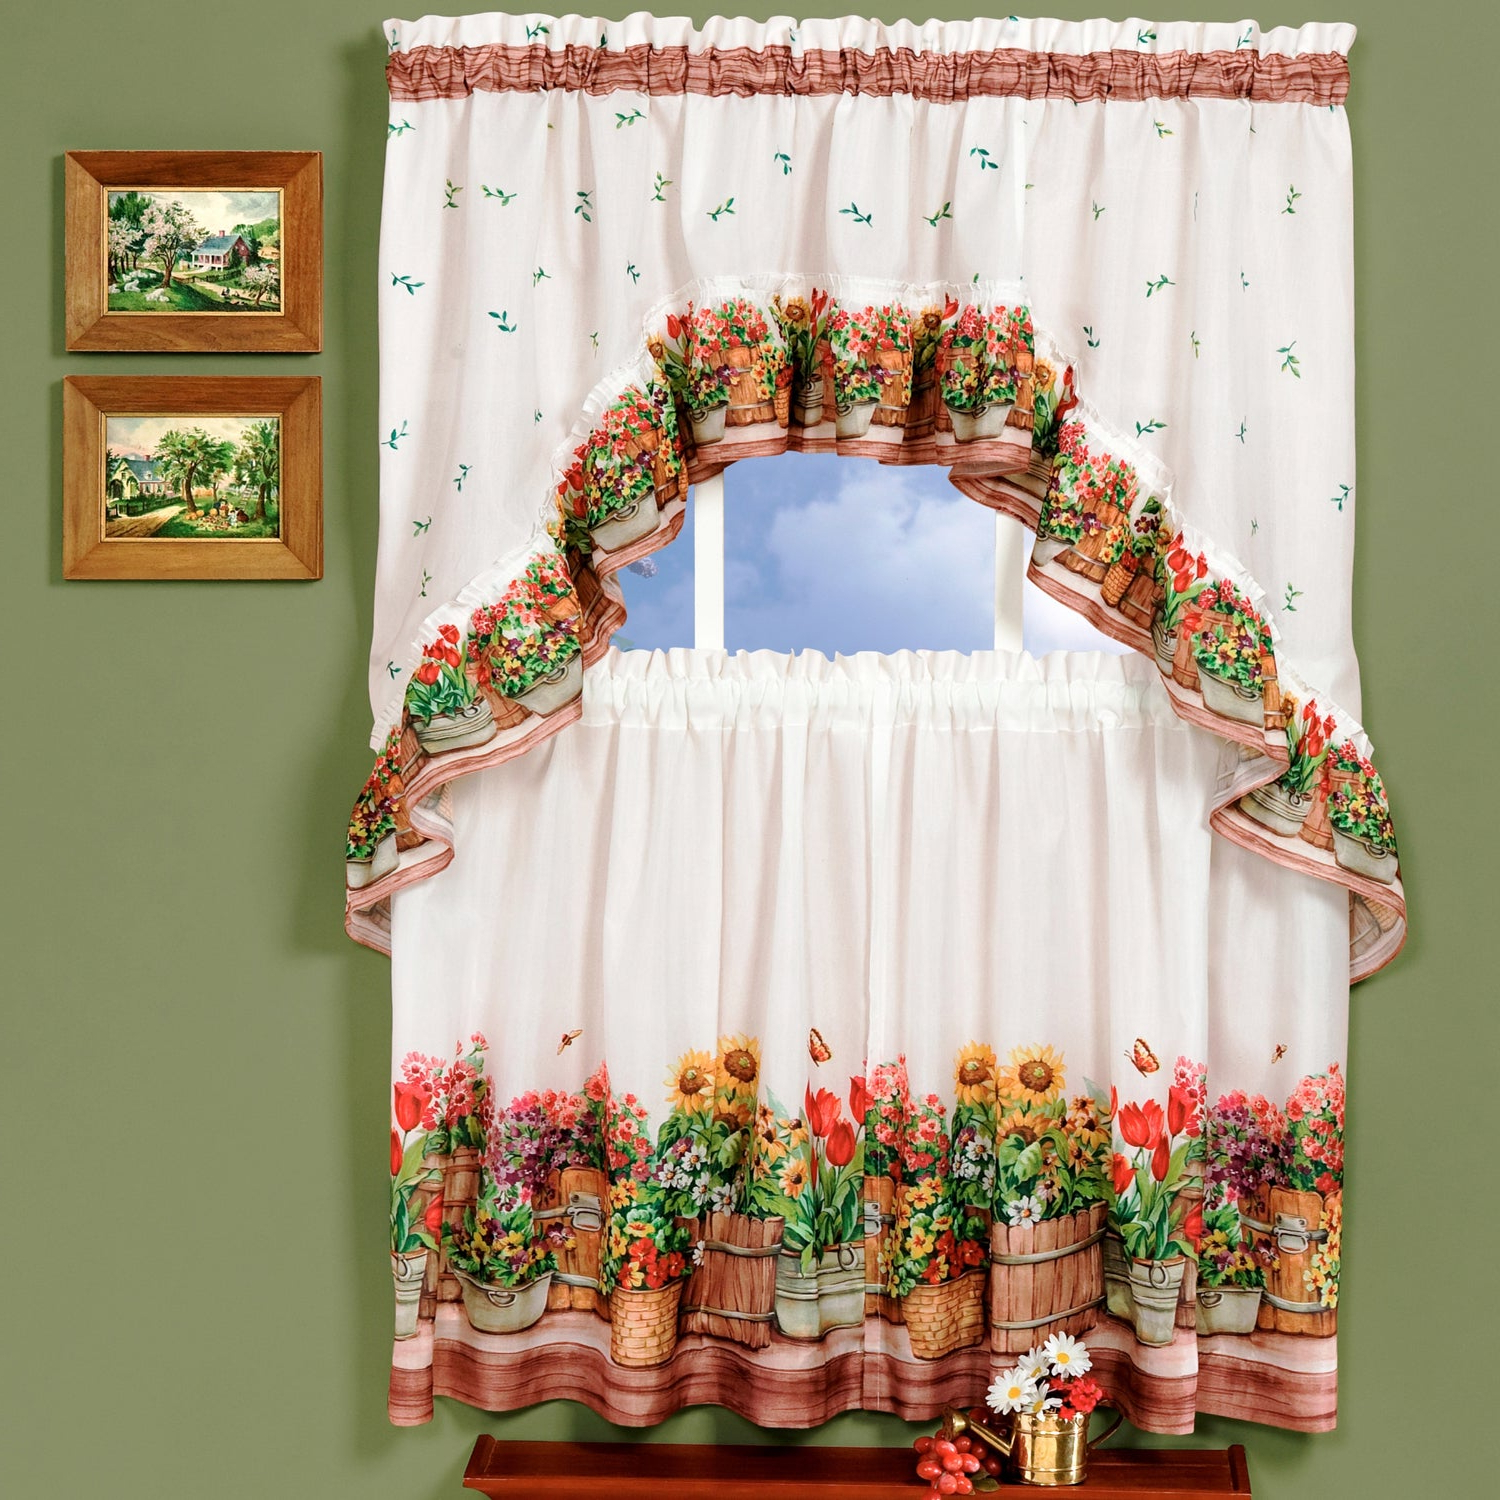 Popular Window Curtains Sets With Colorful Marketplace Vegetable And Sunflower Print Inside Traditional Two Piece Tailored Tier And Swag Window Curtains Set With Ornate Flower Garden Print – 36 Inch (View 6 of 20)